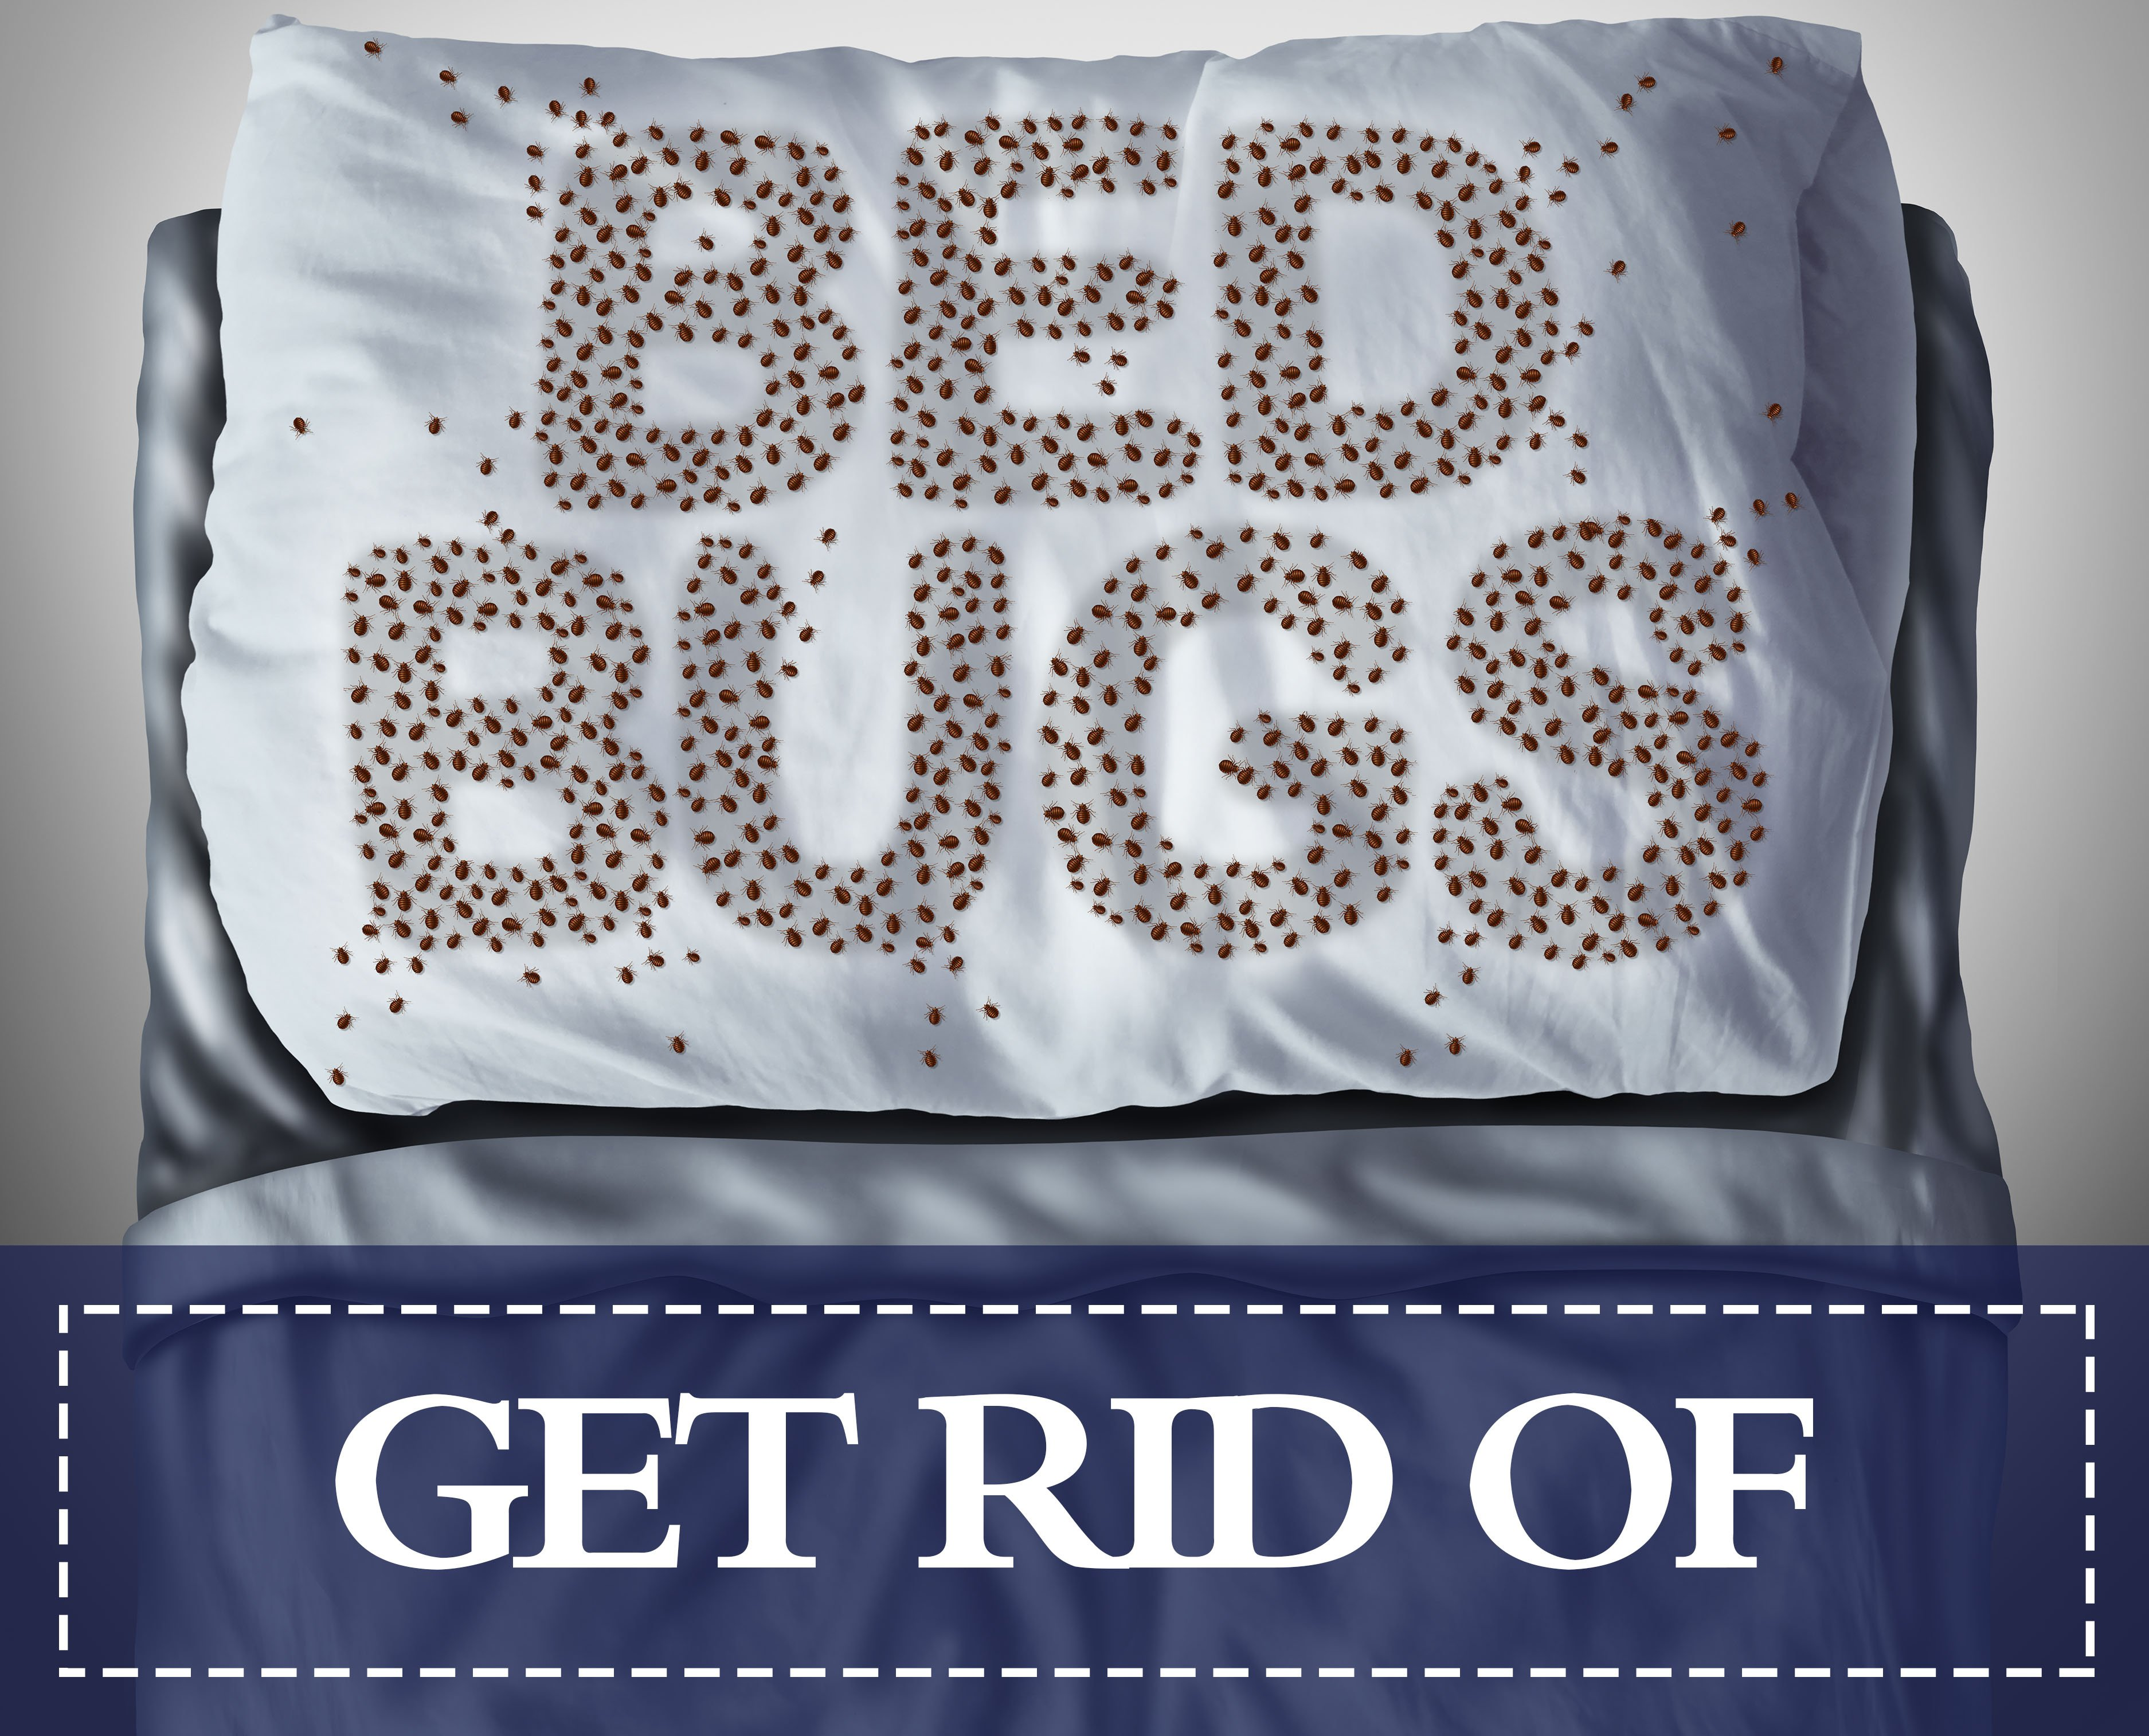 Get Rid of Bedbugs